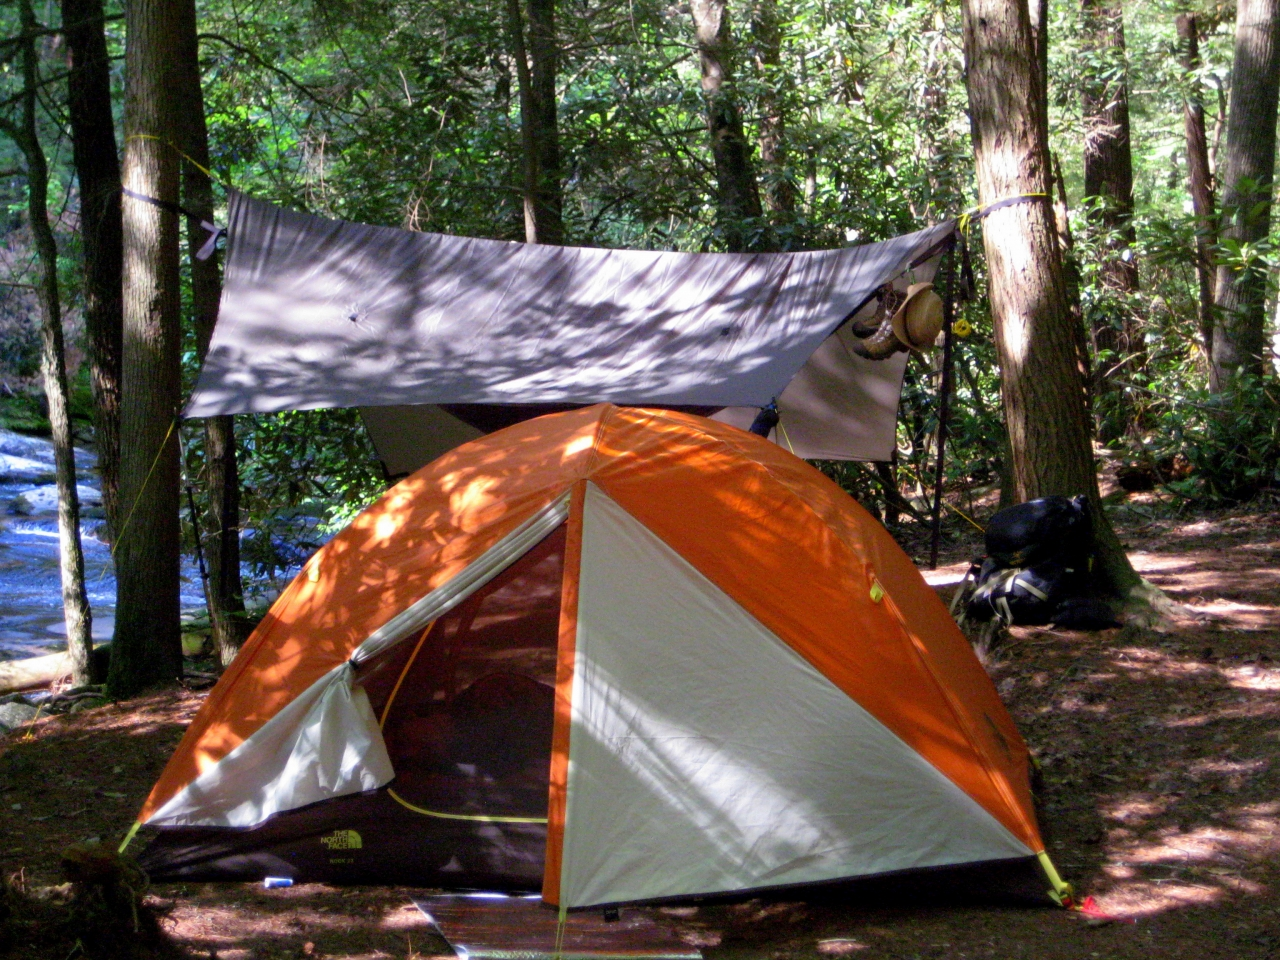 2011 Cohutta Backpacking Adventure